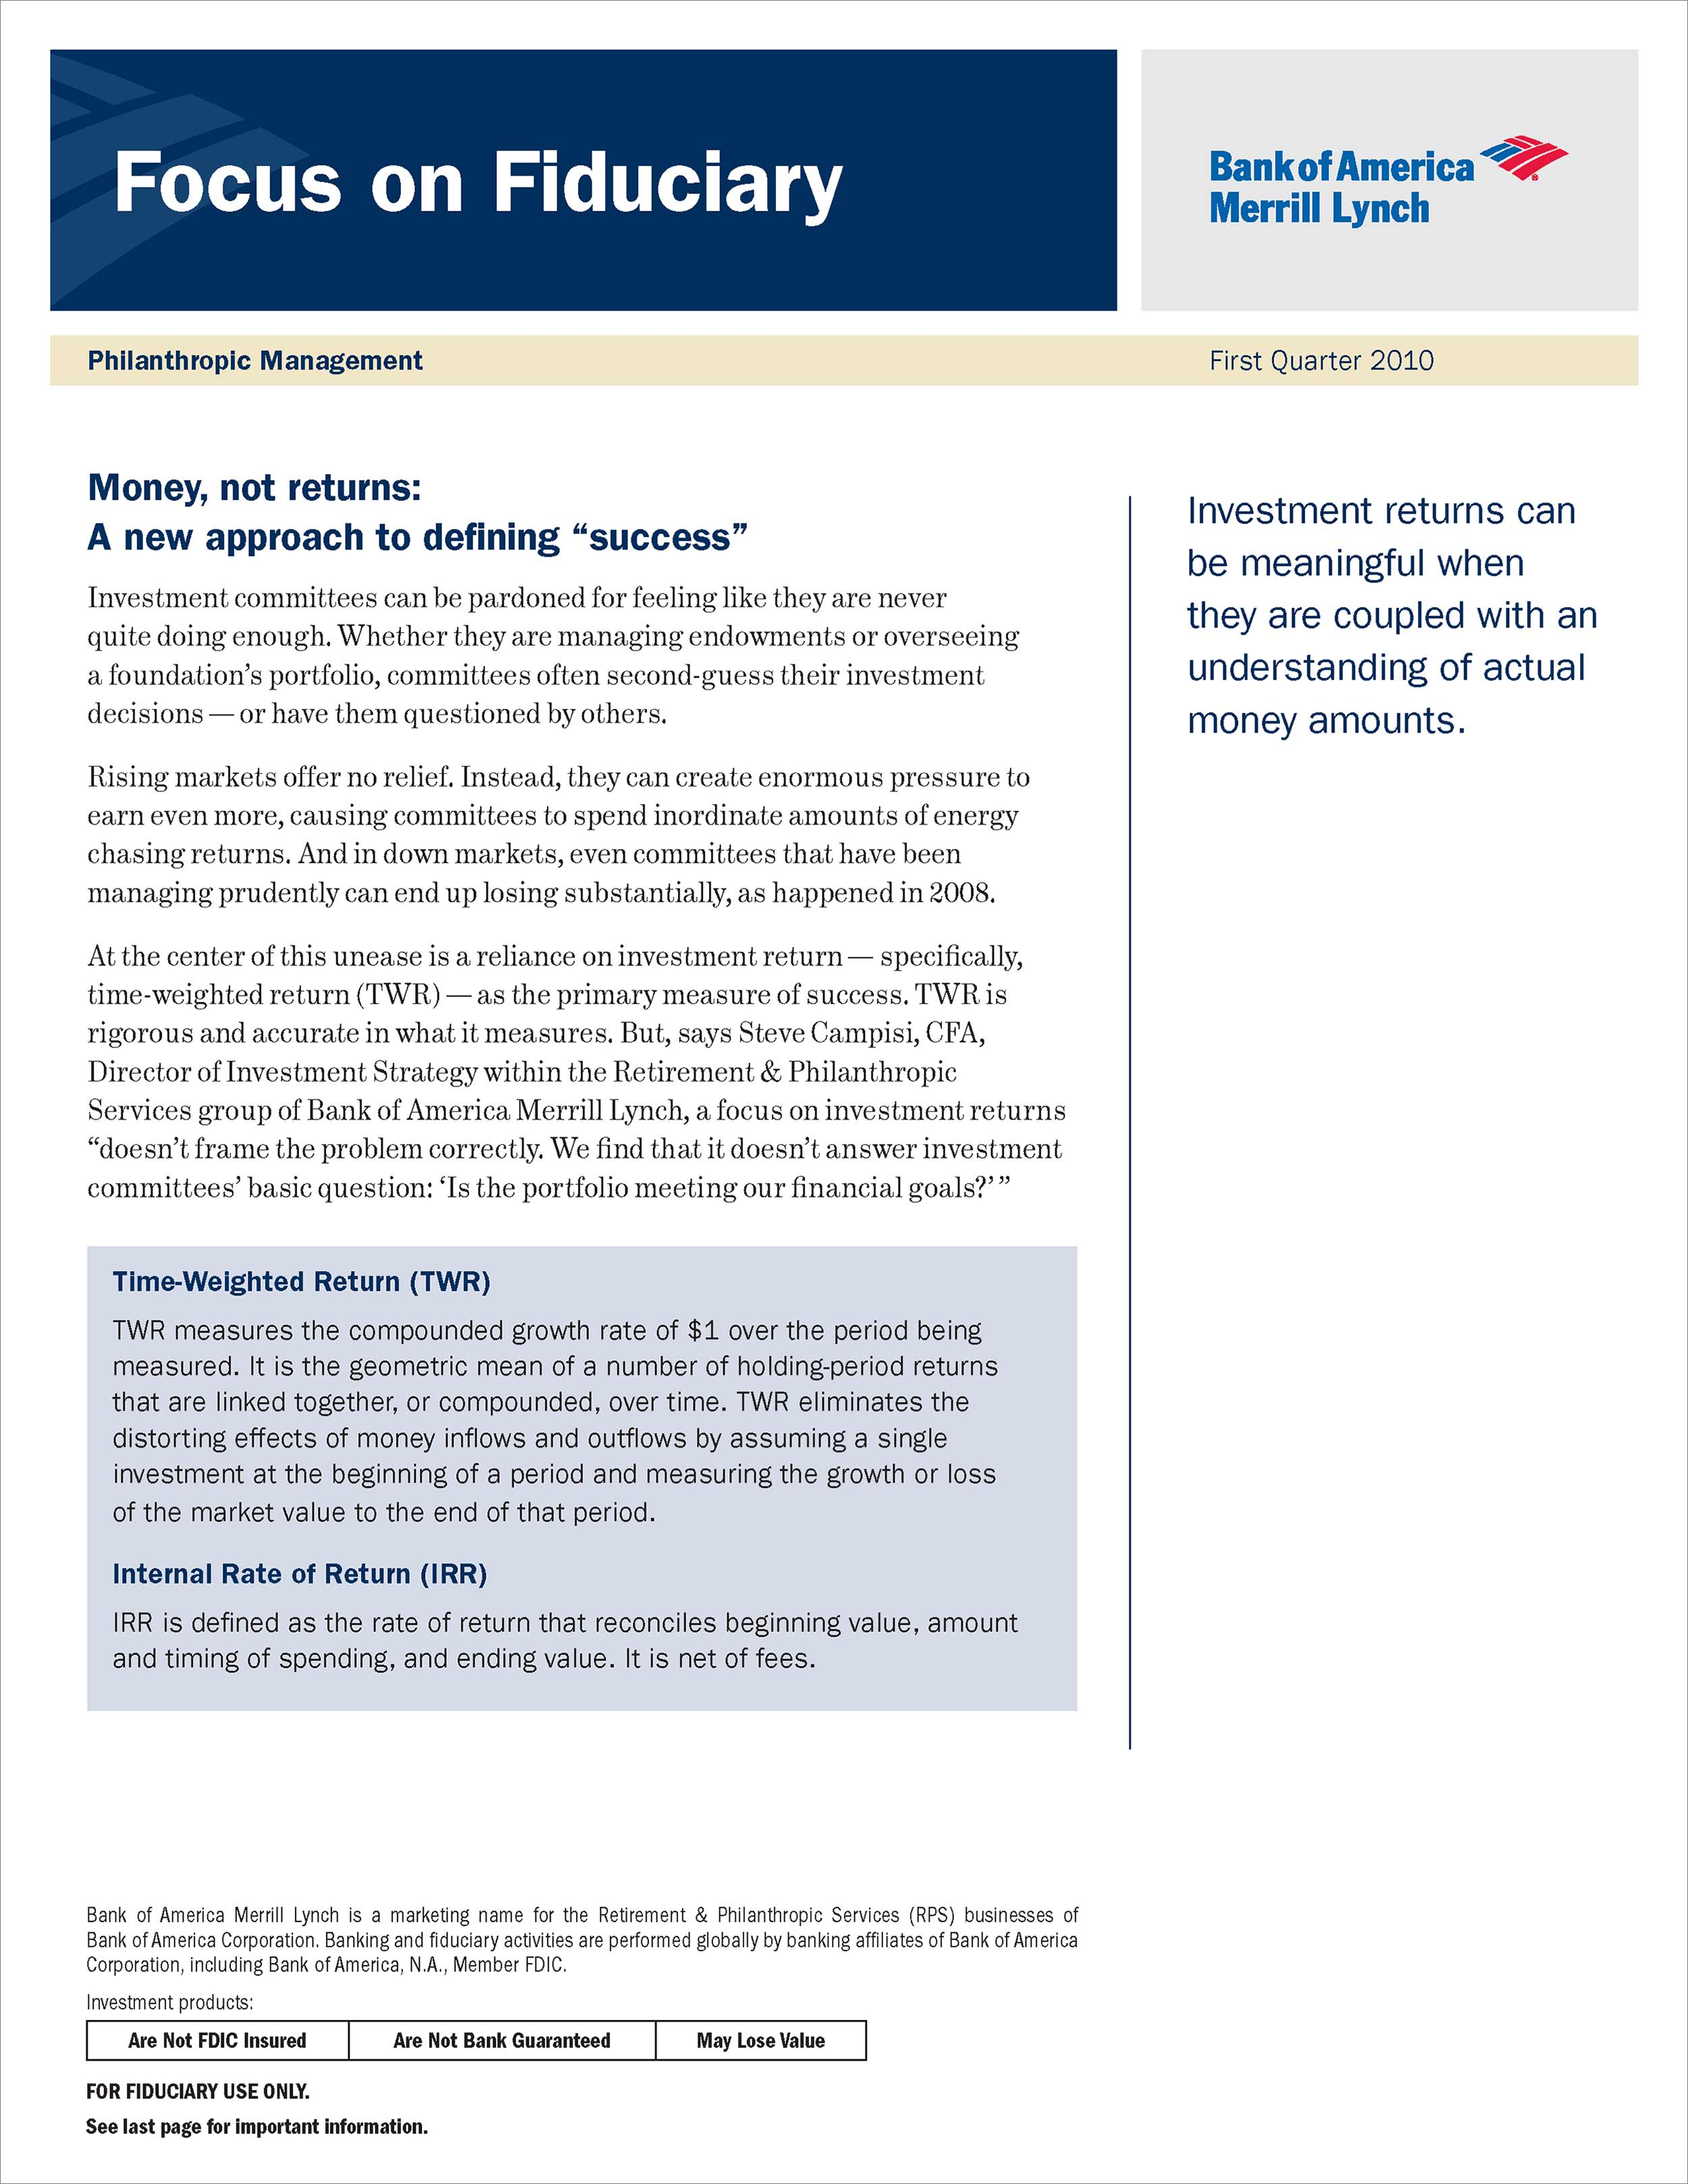 BANK OF AMERICA   CONTENT STRATEGY & DEVELOPMENT / REBRANDING / CREATIVE DIRECTION / DIGITAL CONTENT / PRODUCT CAMPAIGNS / THOUGHT LEADERSHIP / SALES & MARKETING COLLATERAL